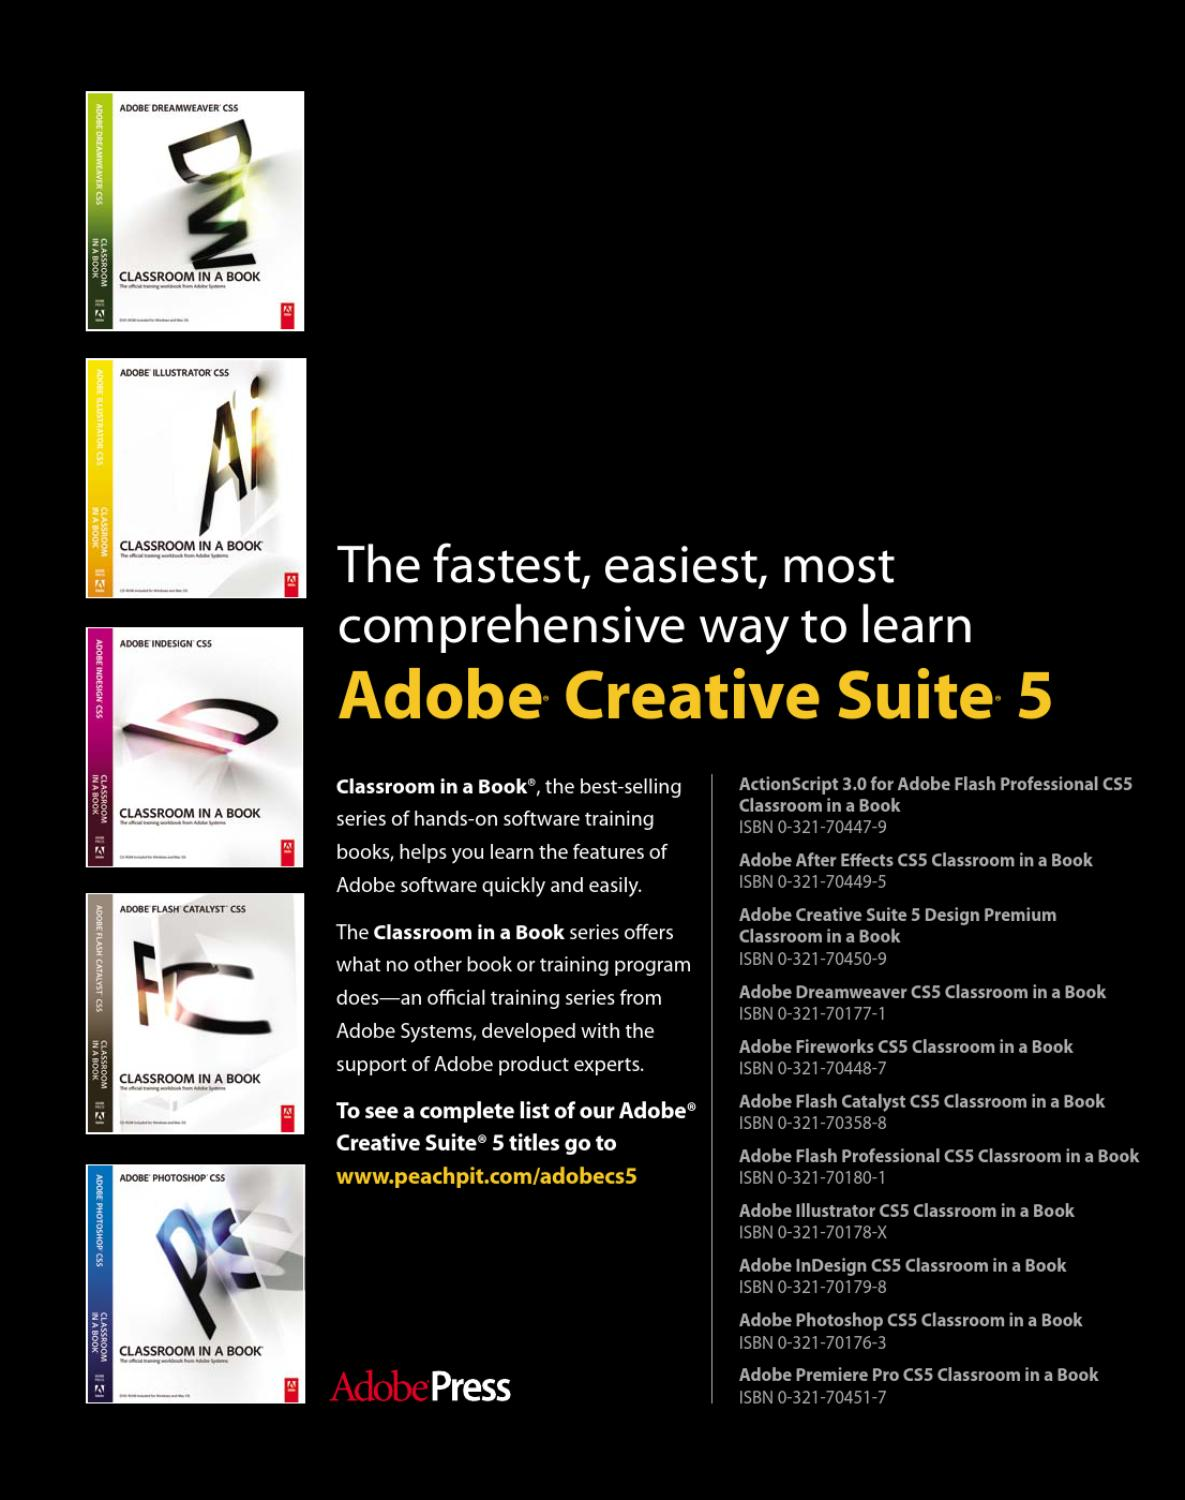 adobe indesign cs5 classroom in a book free download